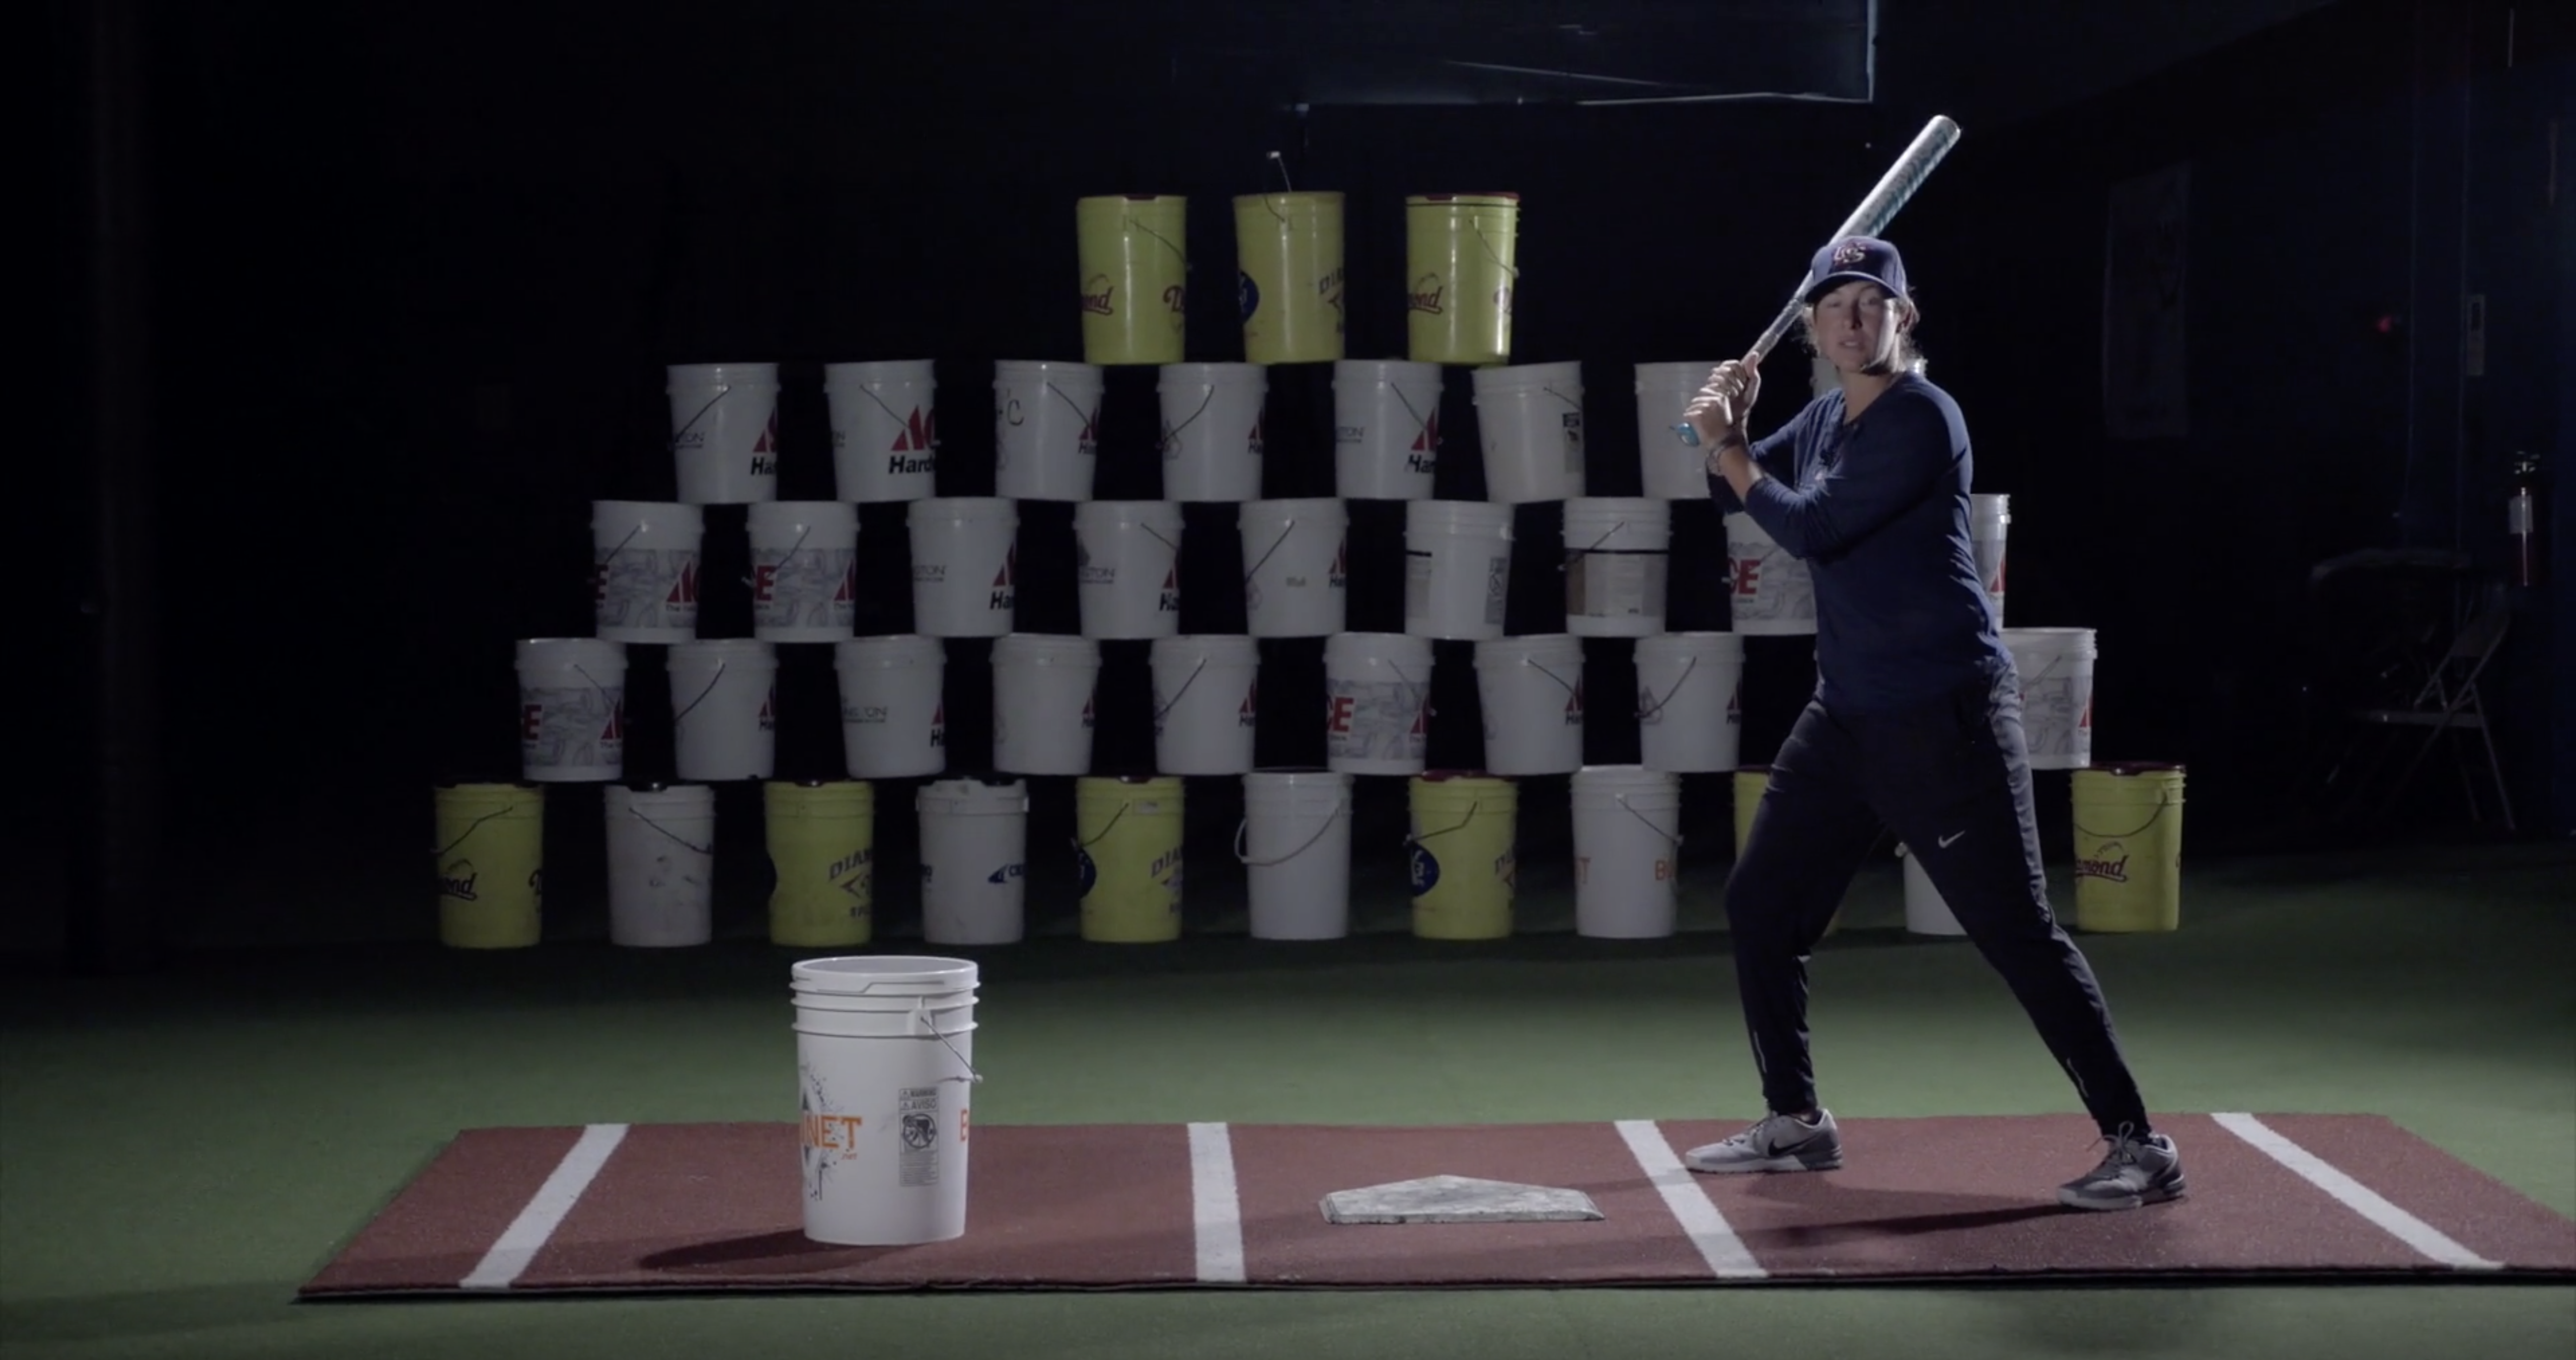 Batting Stance Basics